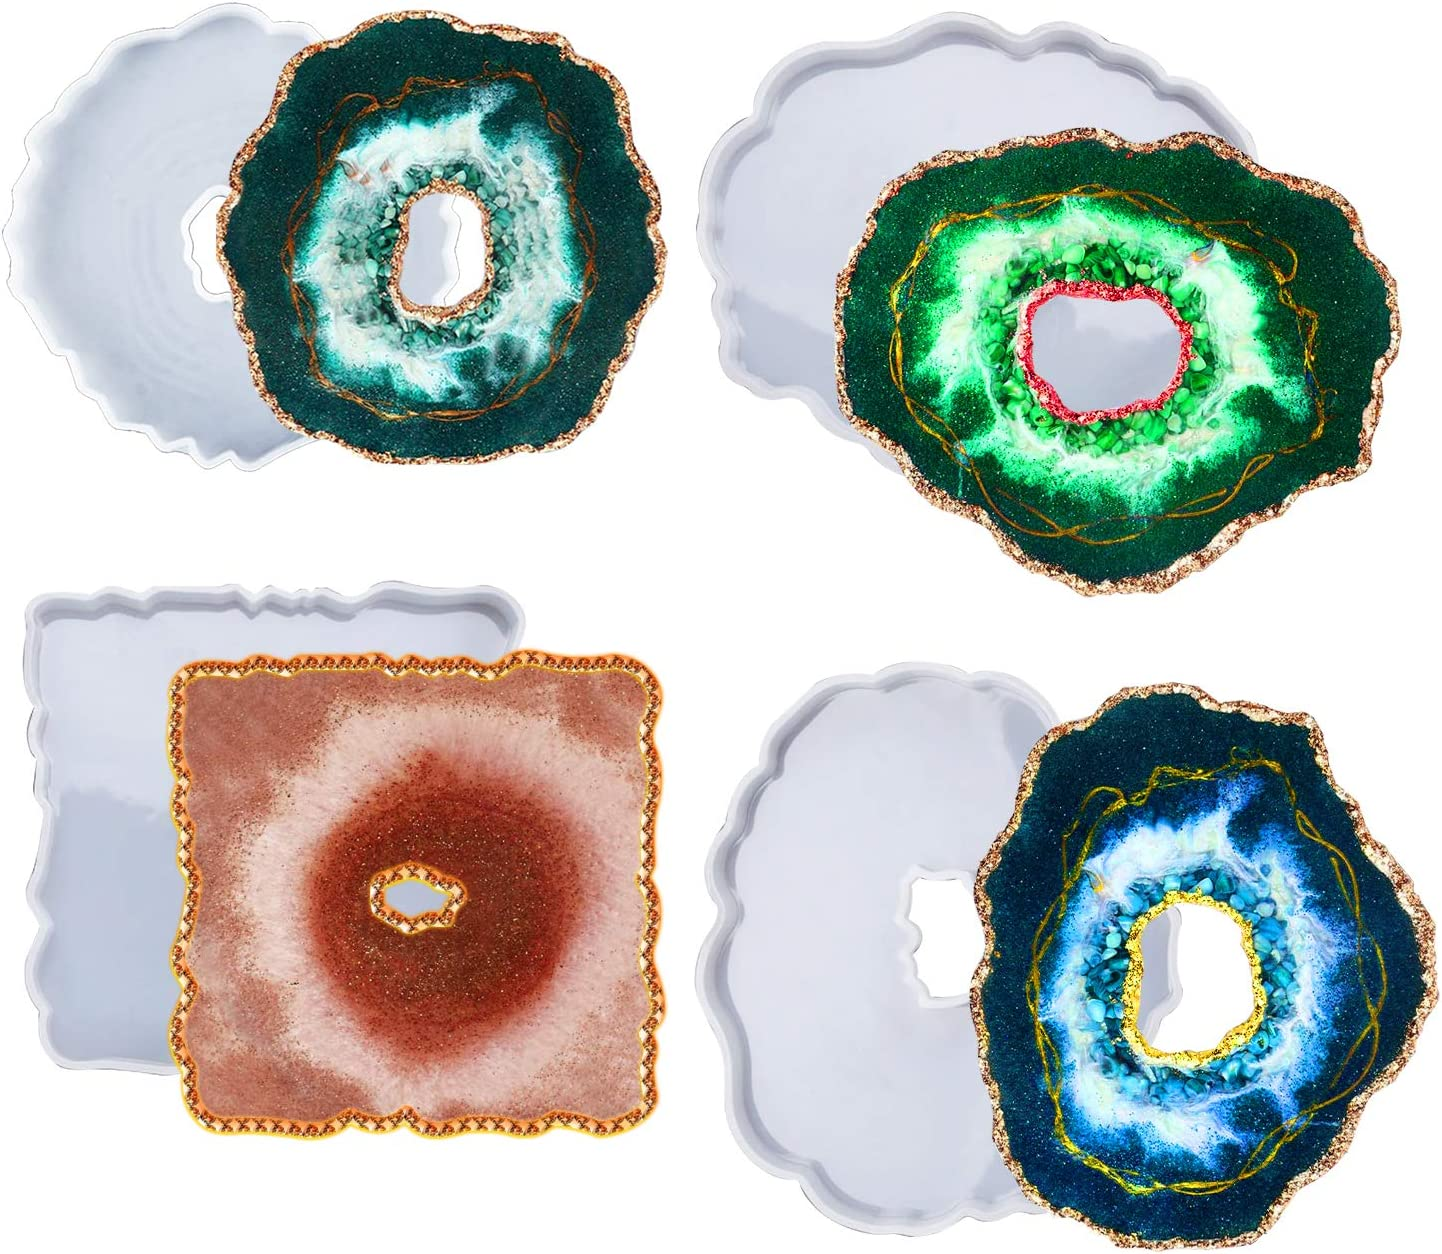 Resin Coaster Molds with 4PCS Druzy Geode Silicone Molds, Hollow Agate Coaster Epoxy Molds,Silicone Resin Molds for for Making Faux Agate Slices,Coasters, Home Decoration